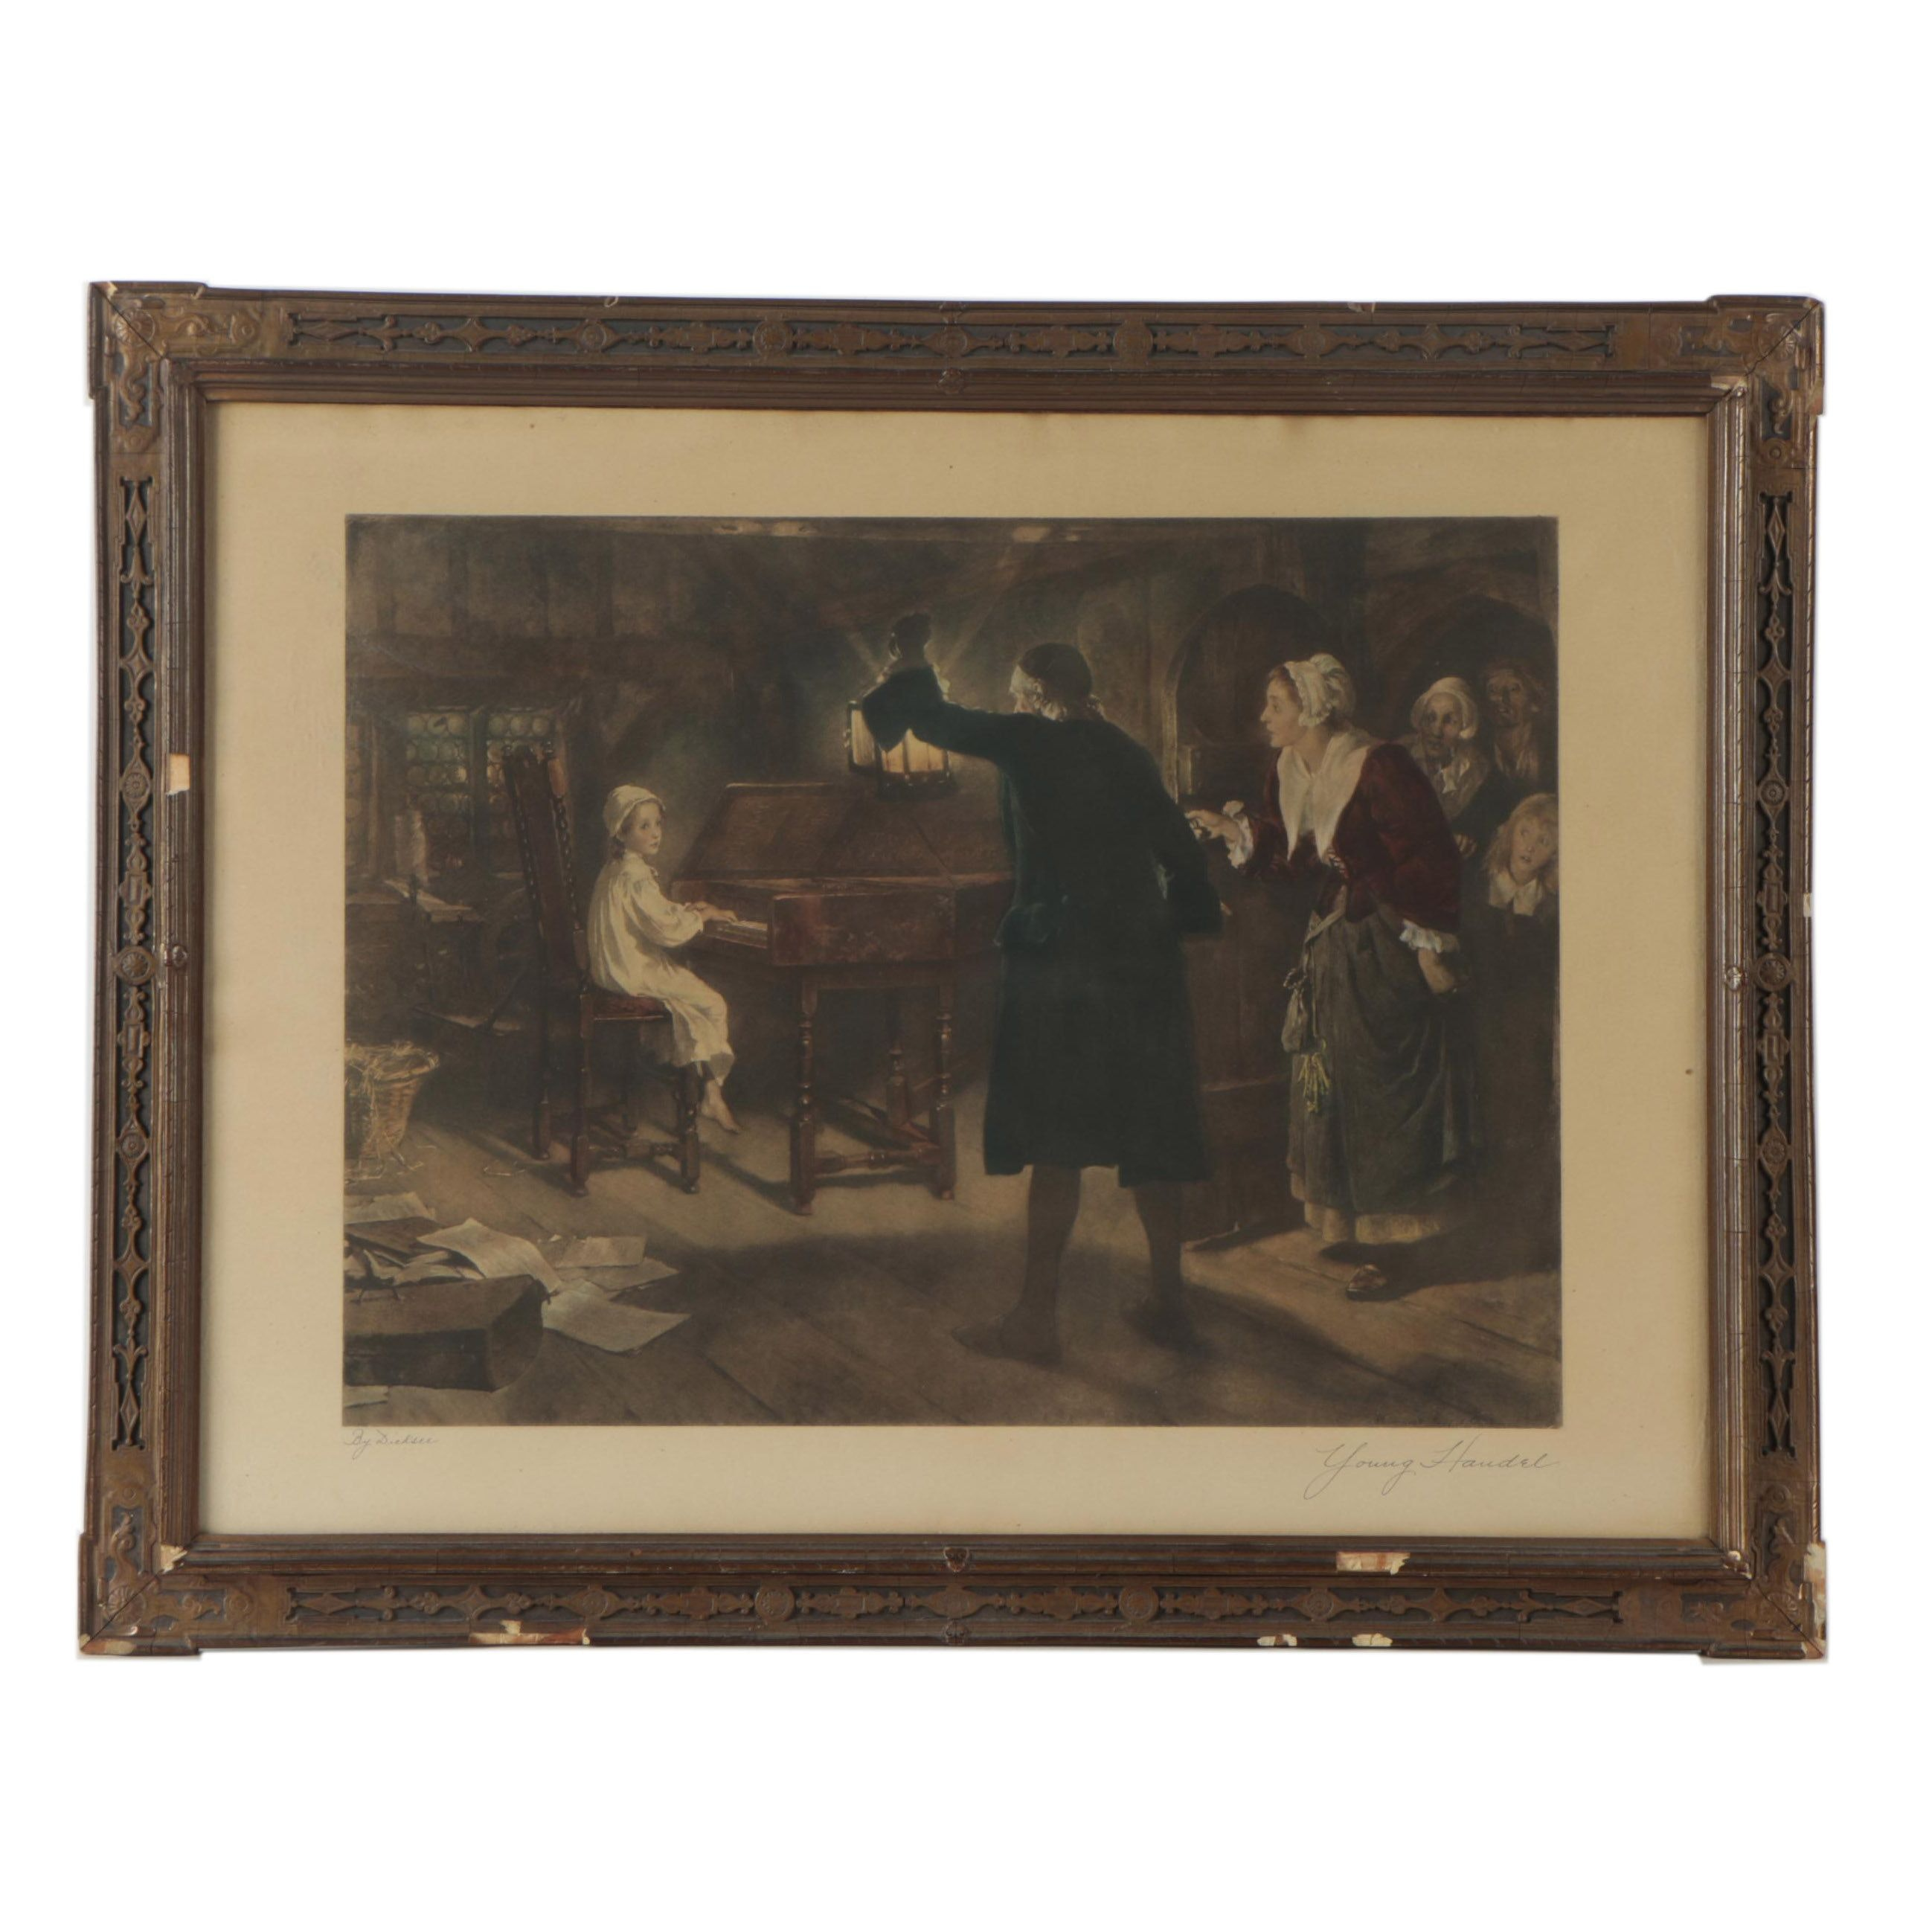 "Hand-Colored Lithograph After Margaret Dicksee's ""The Child Handel"""